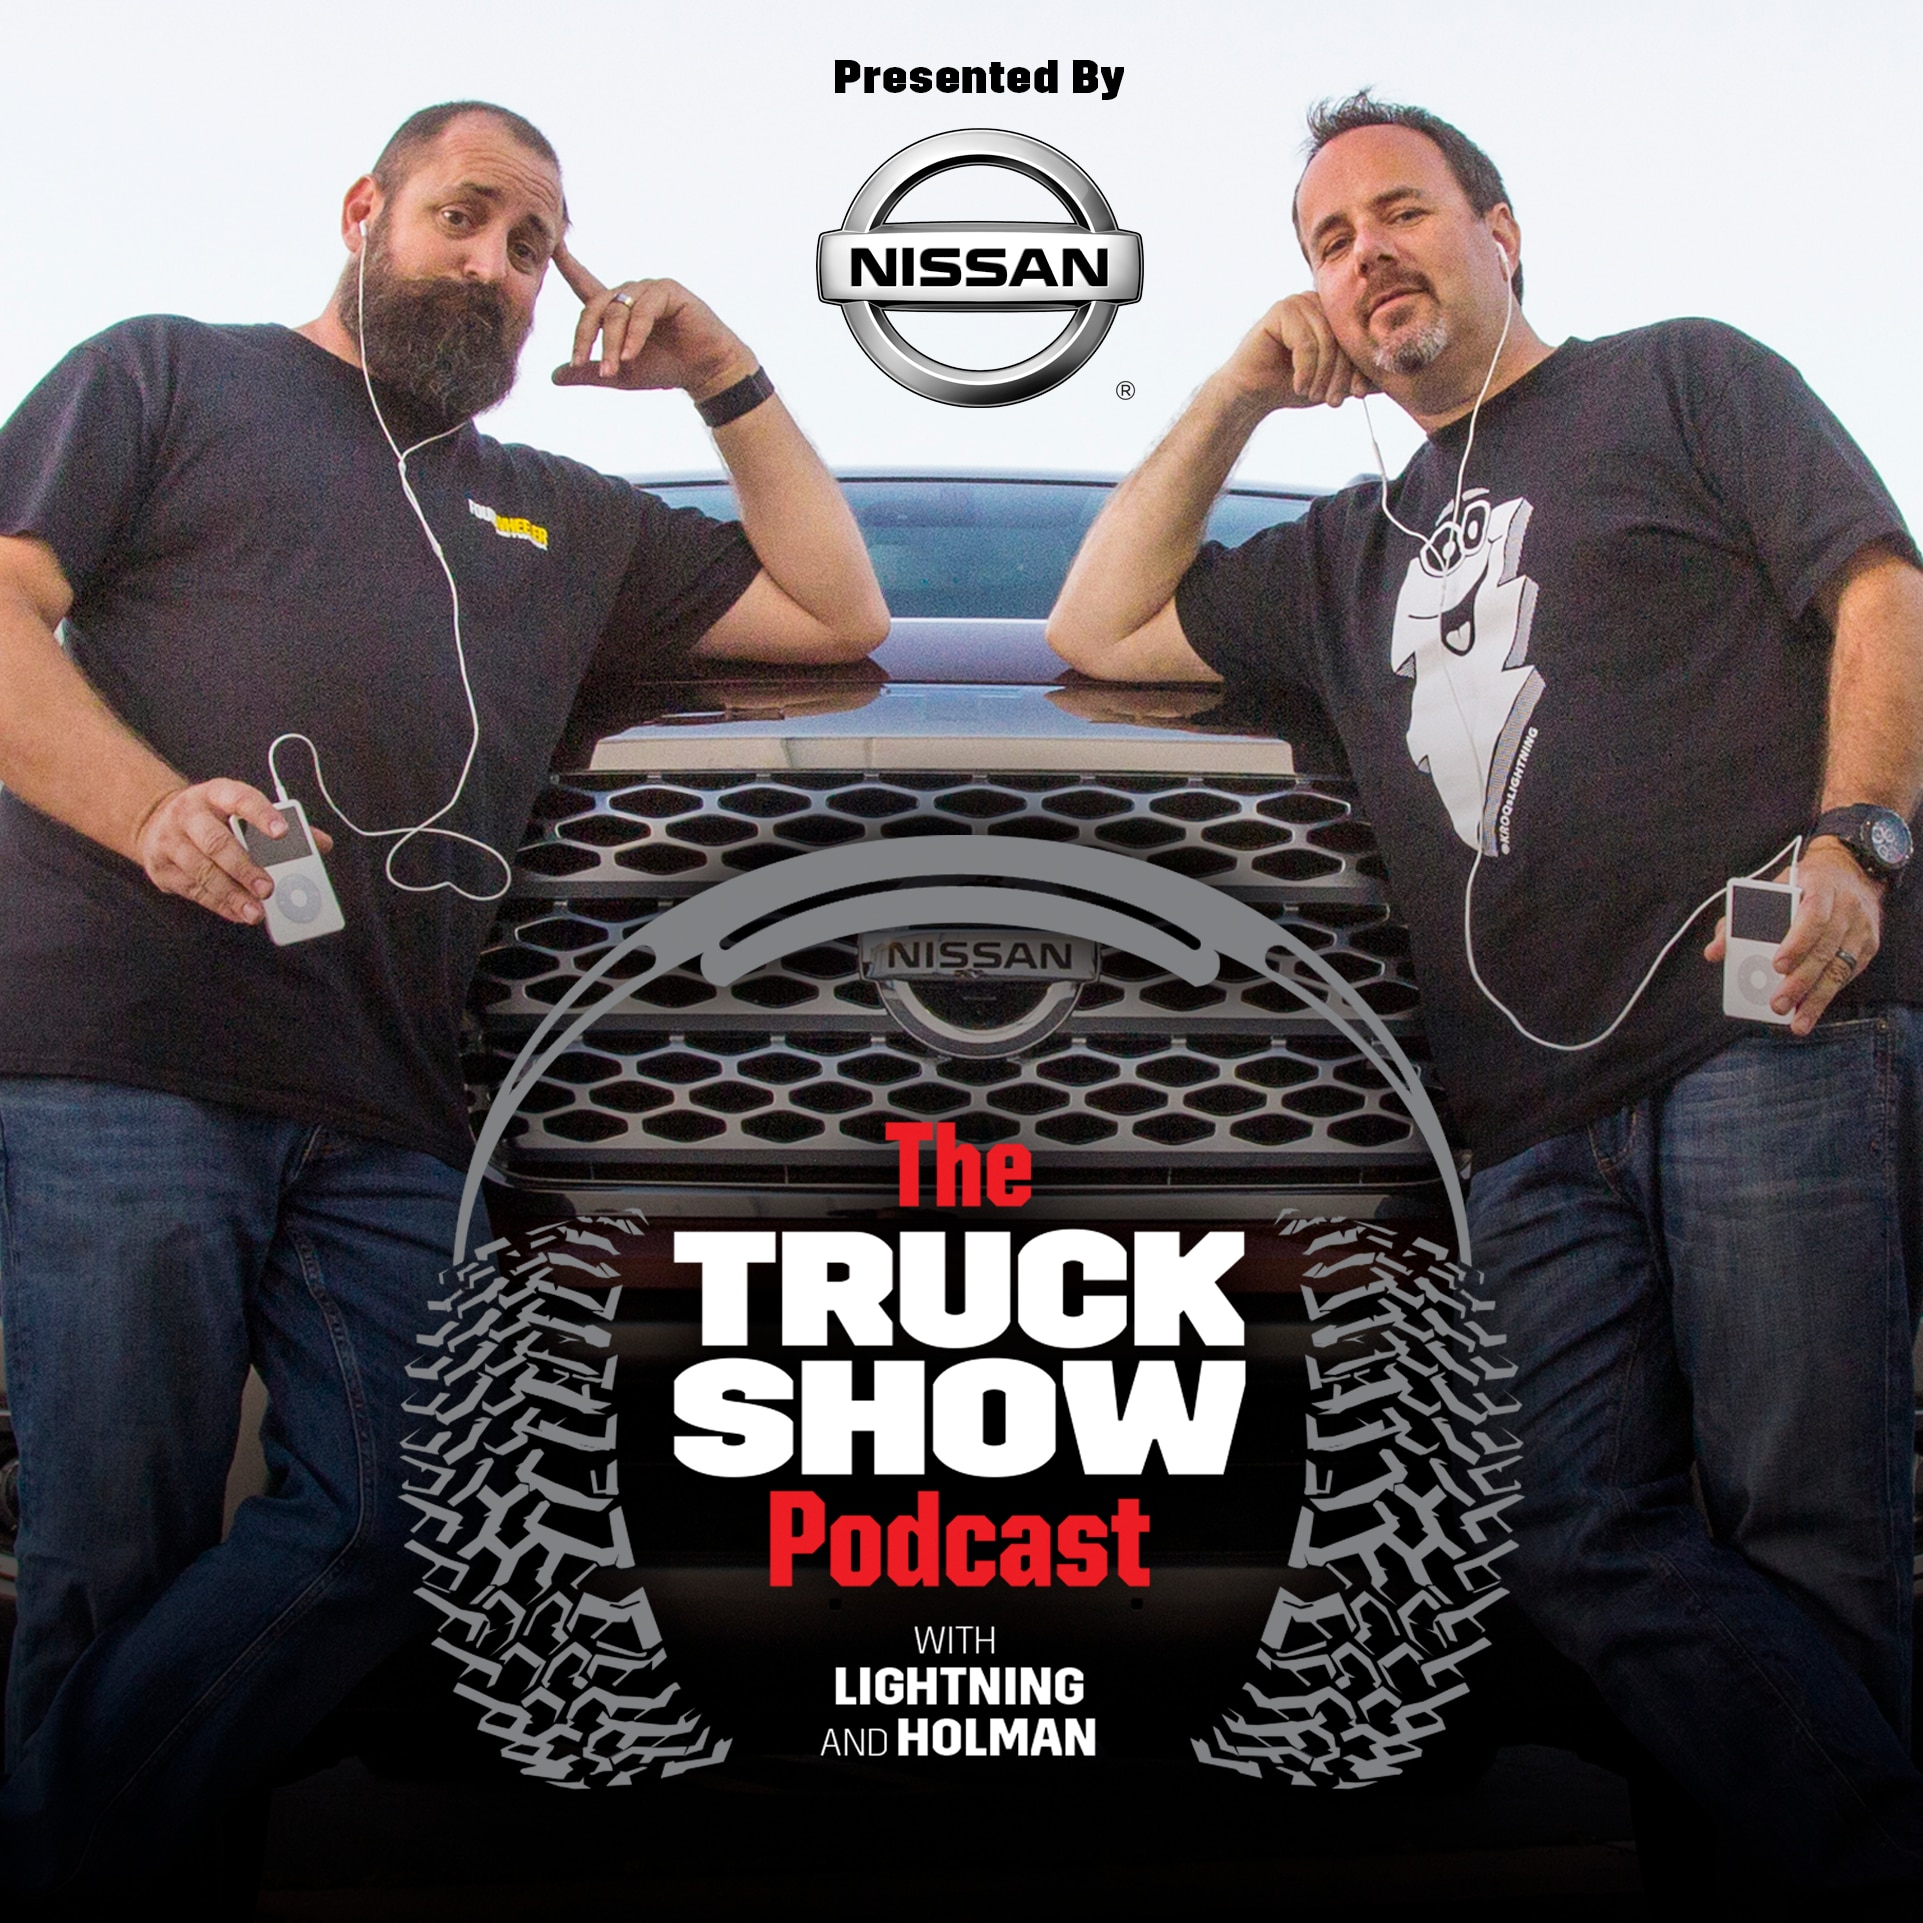 Truck Show Podcast Presented by Nissan Holman Lightning